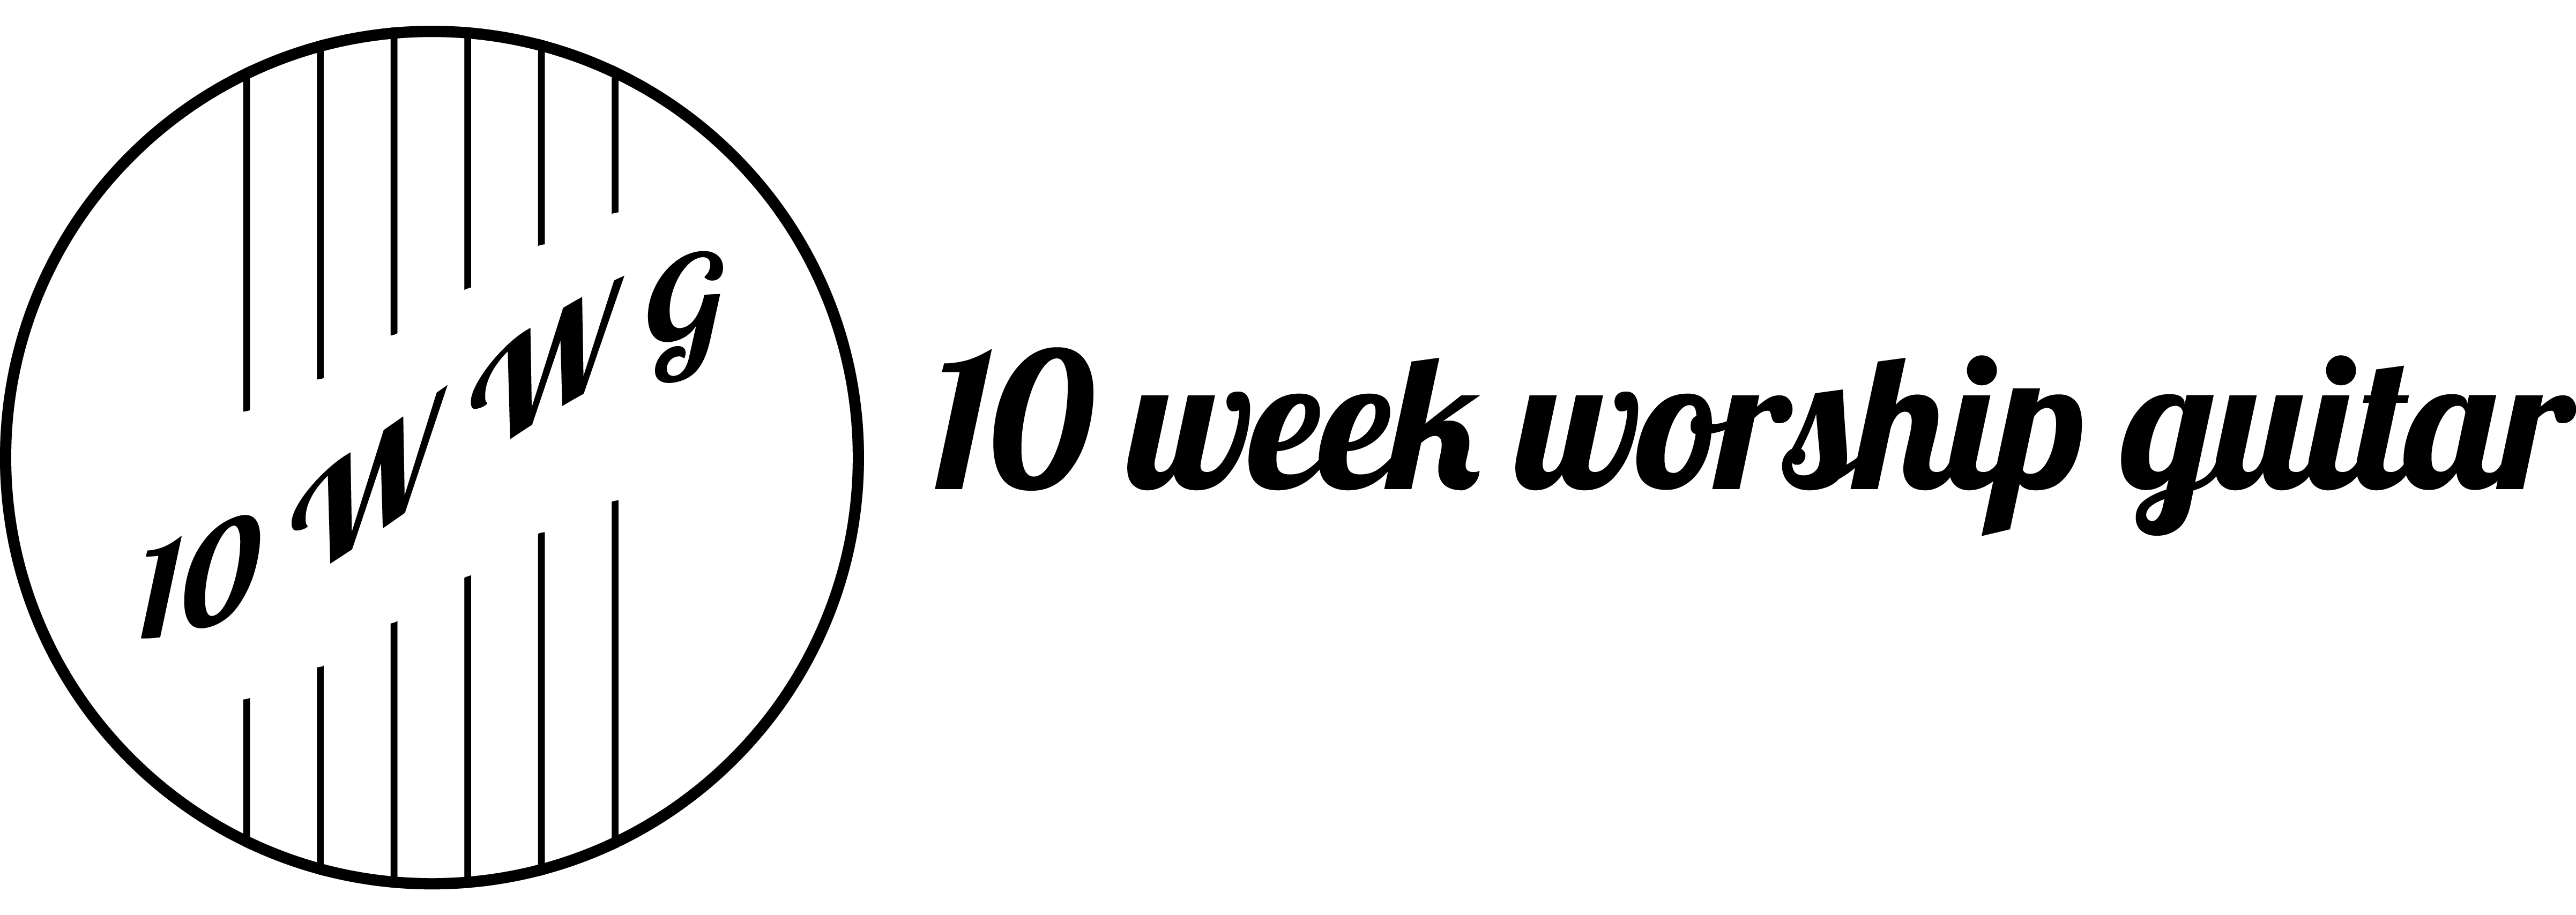 10 Week Worship Guitar